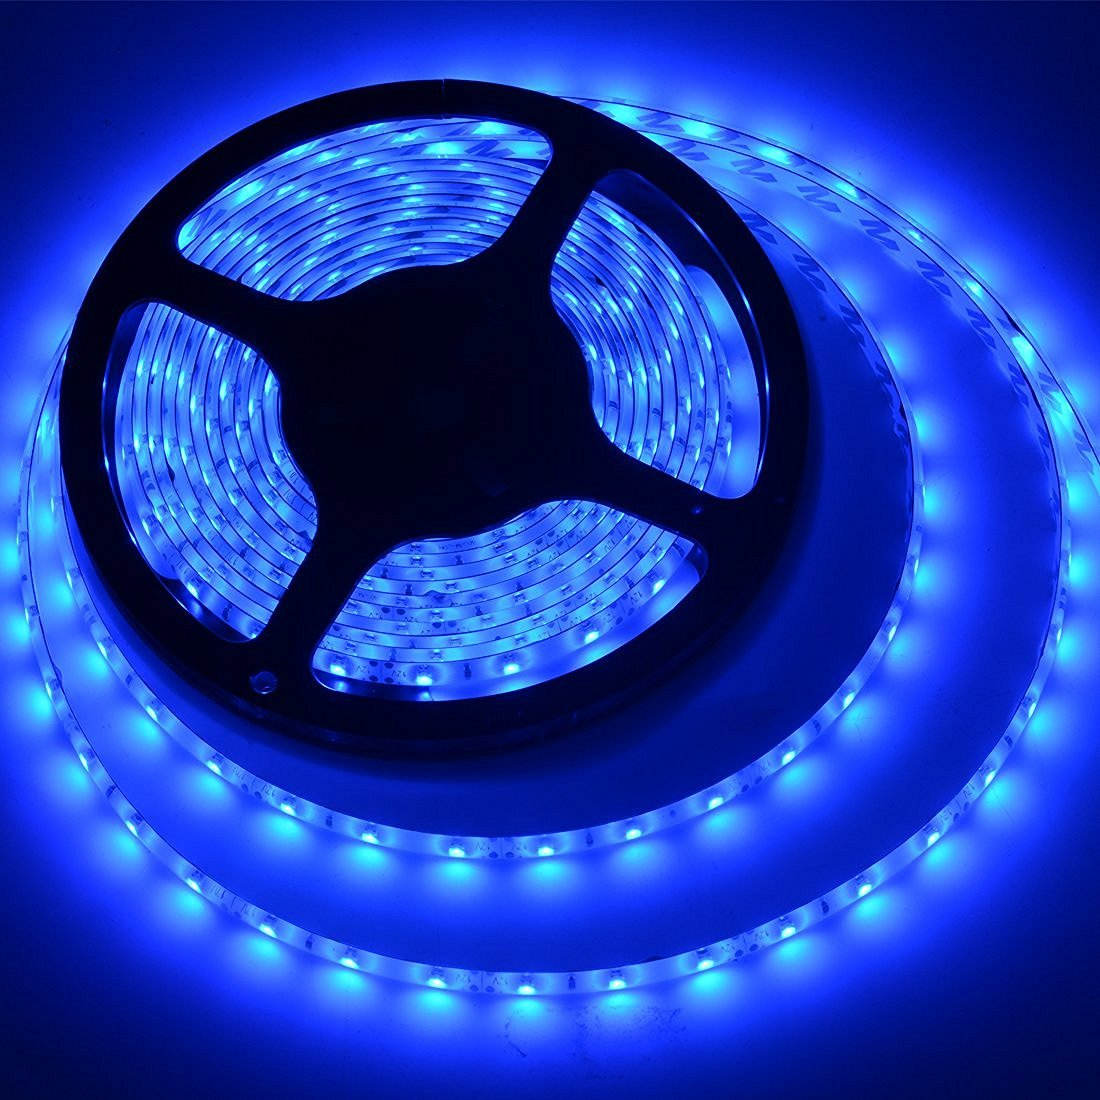 Amazon meili led light strip smd 3528 164 ft 5 meter amazon meili led light strip smd 3528 164 ft 5 meter waterproof 300 leds 12v flexible rope light no power supply blue home improvement aloadofball Image collections